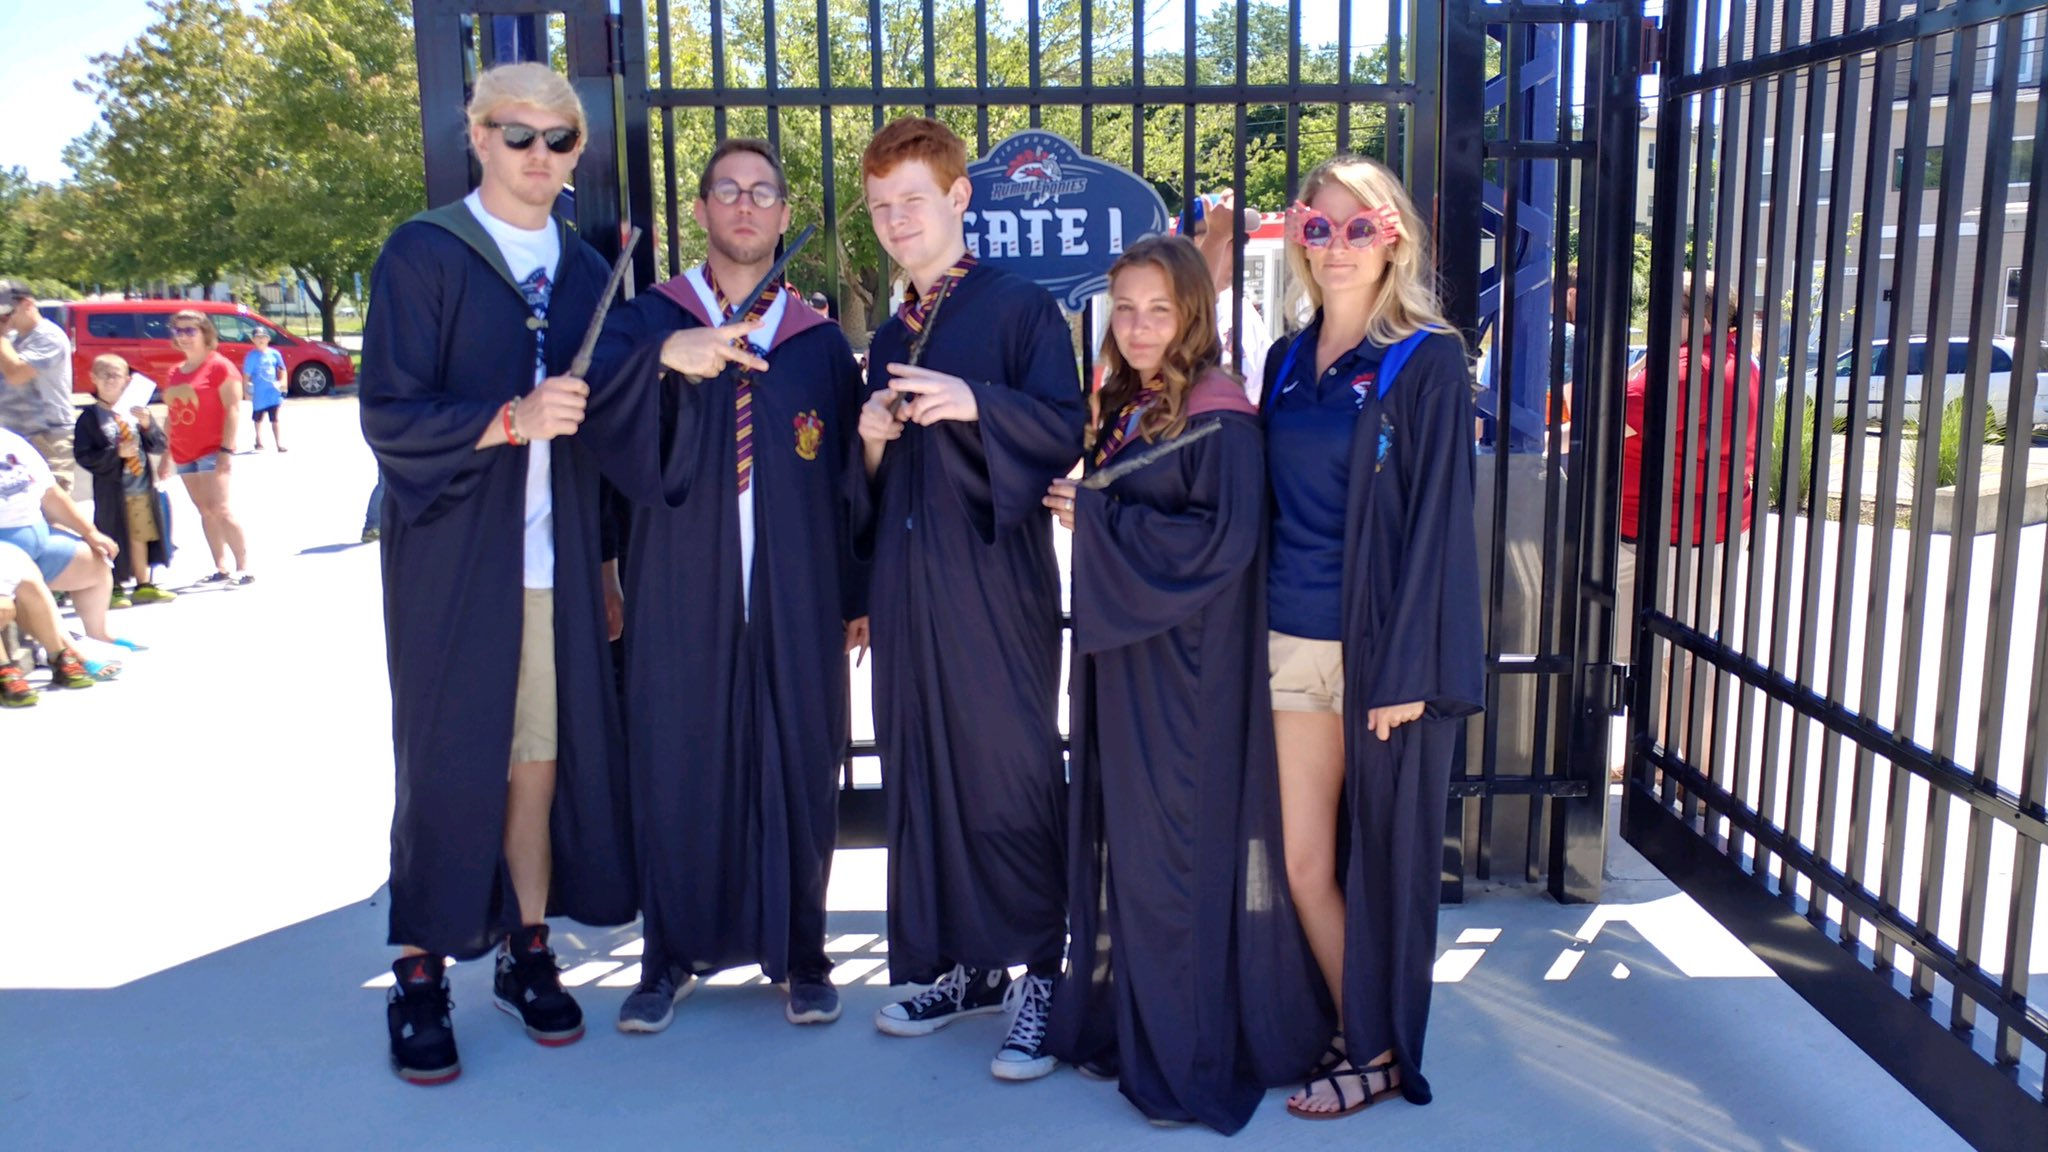 Happy Birthday Harry Potter!  We have a free wizarding class in the fun zone before the game!